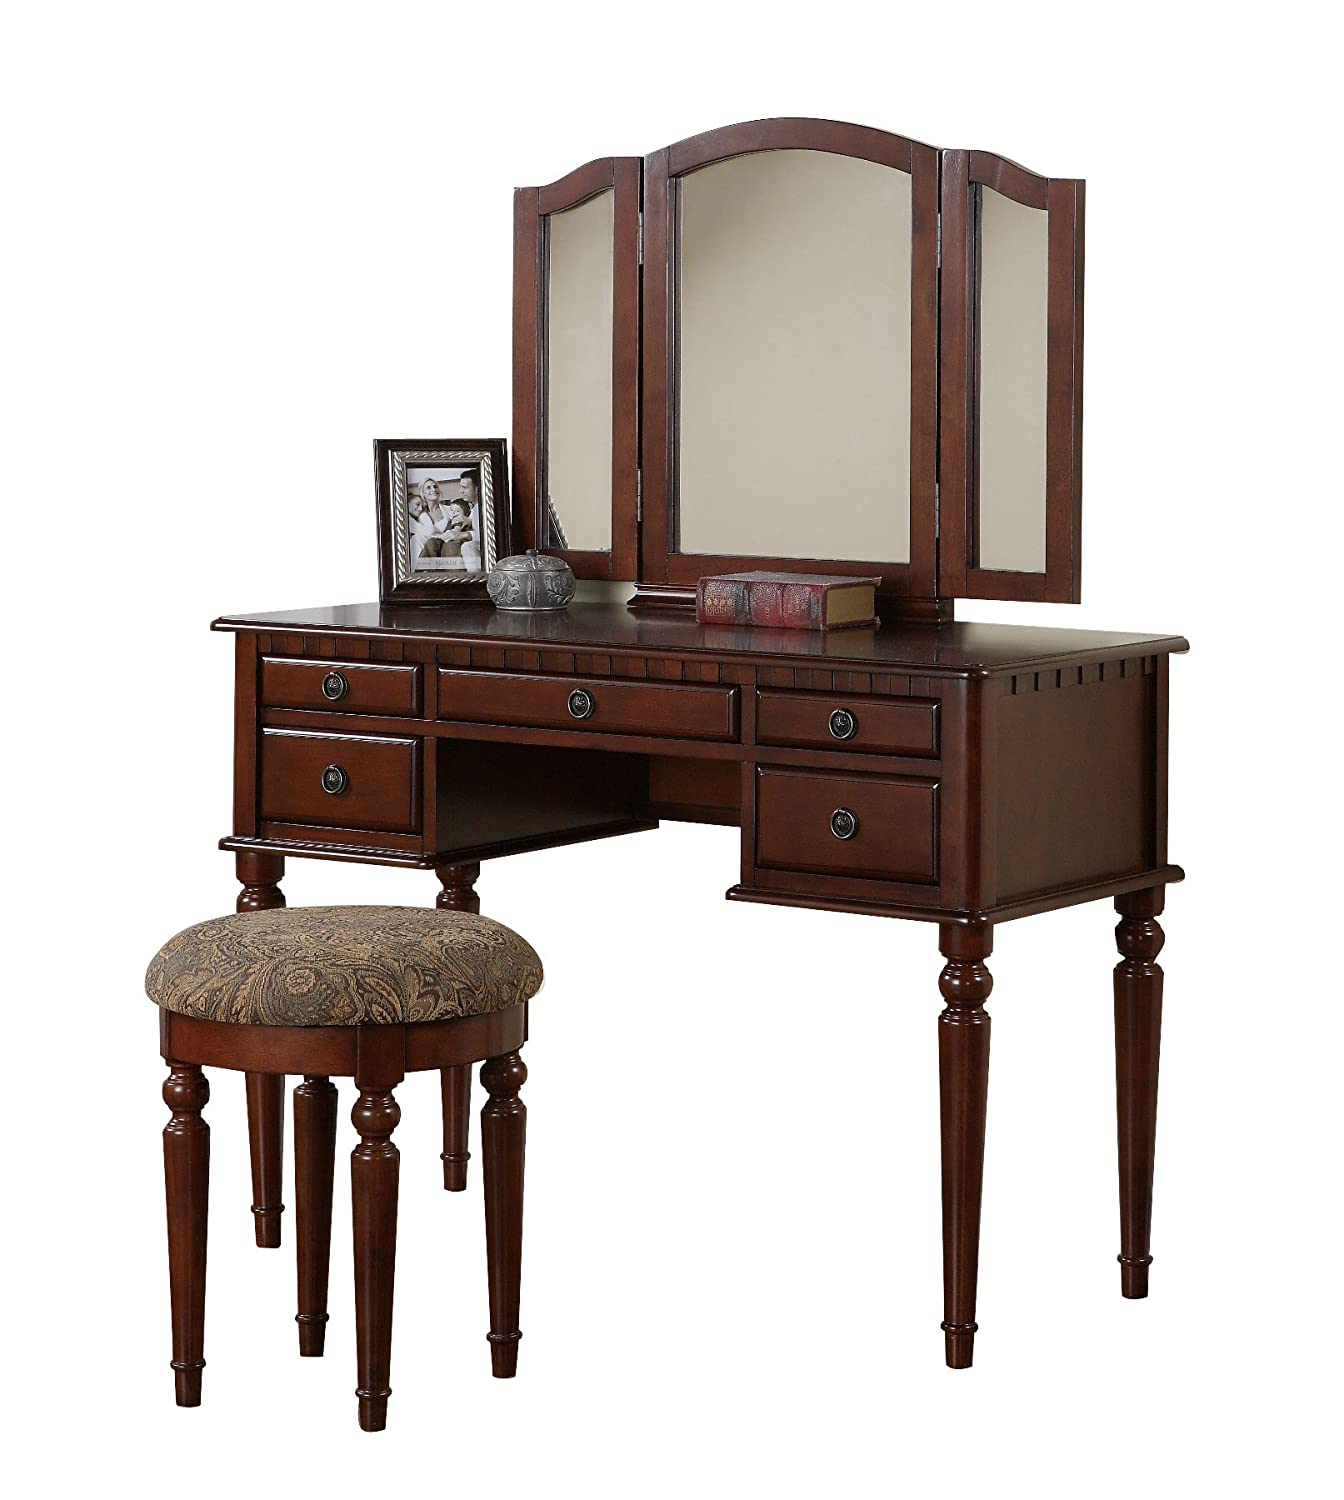 New 3 panel mirror vanity makeup table wood jewelry desk with stool free ship ebay - Stool for vanity table ...